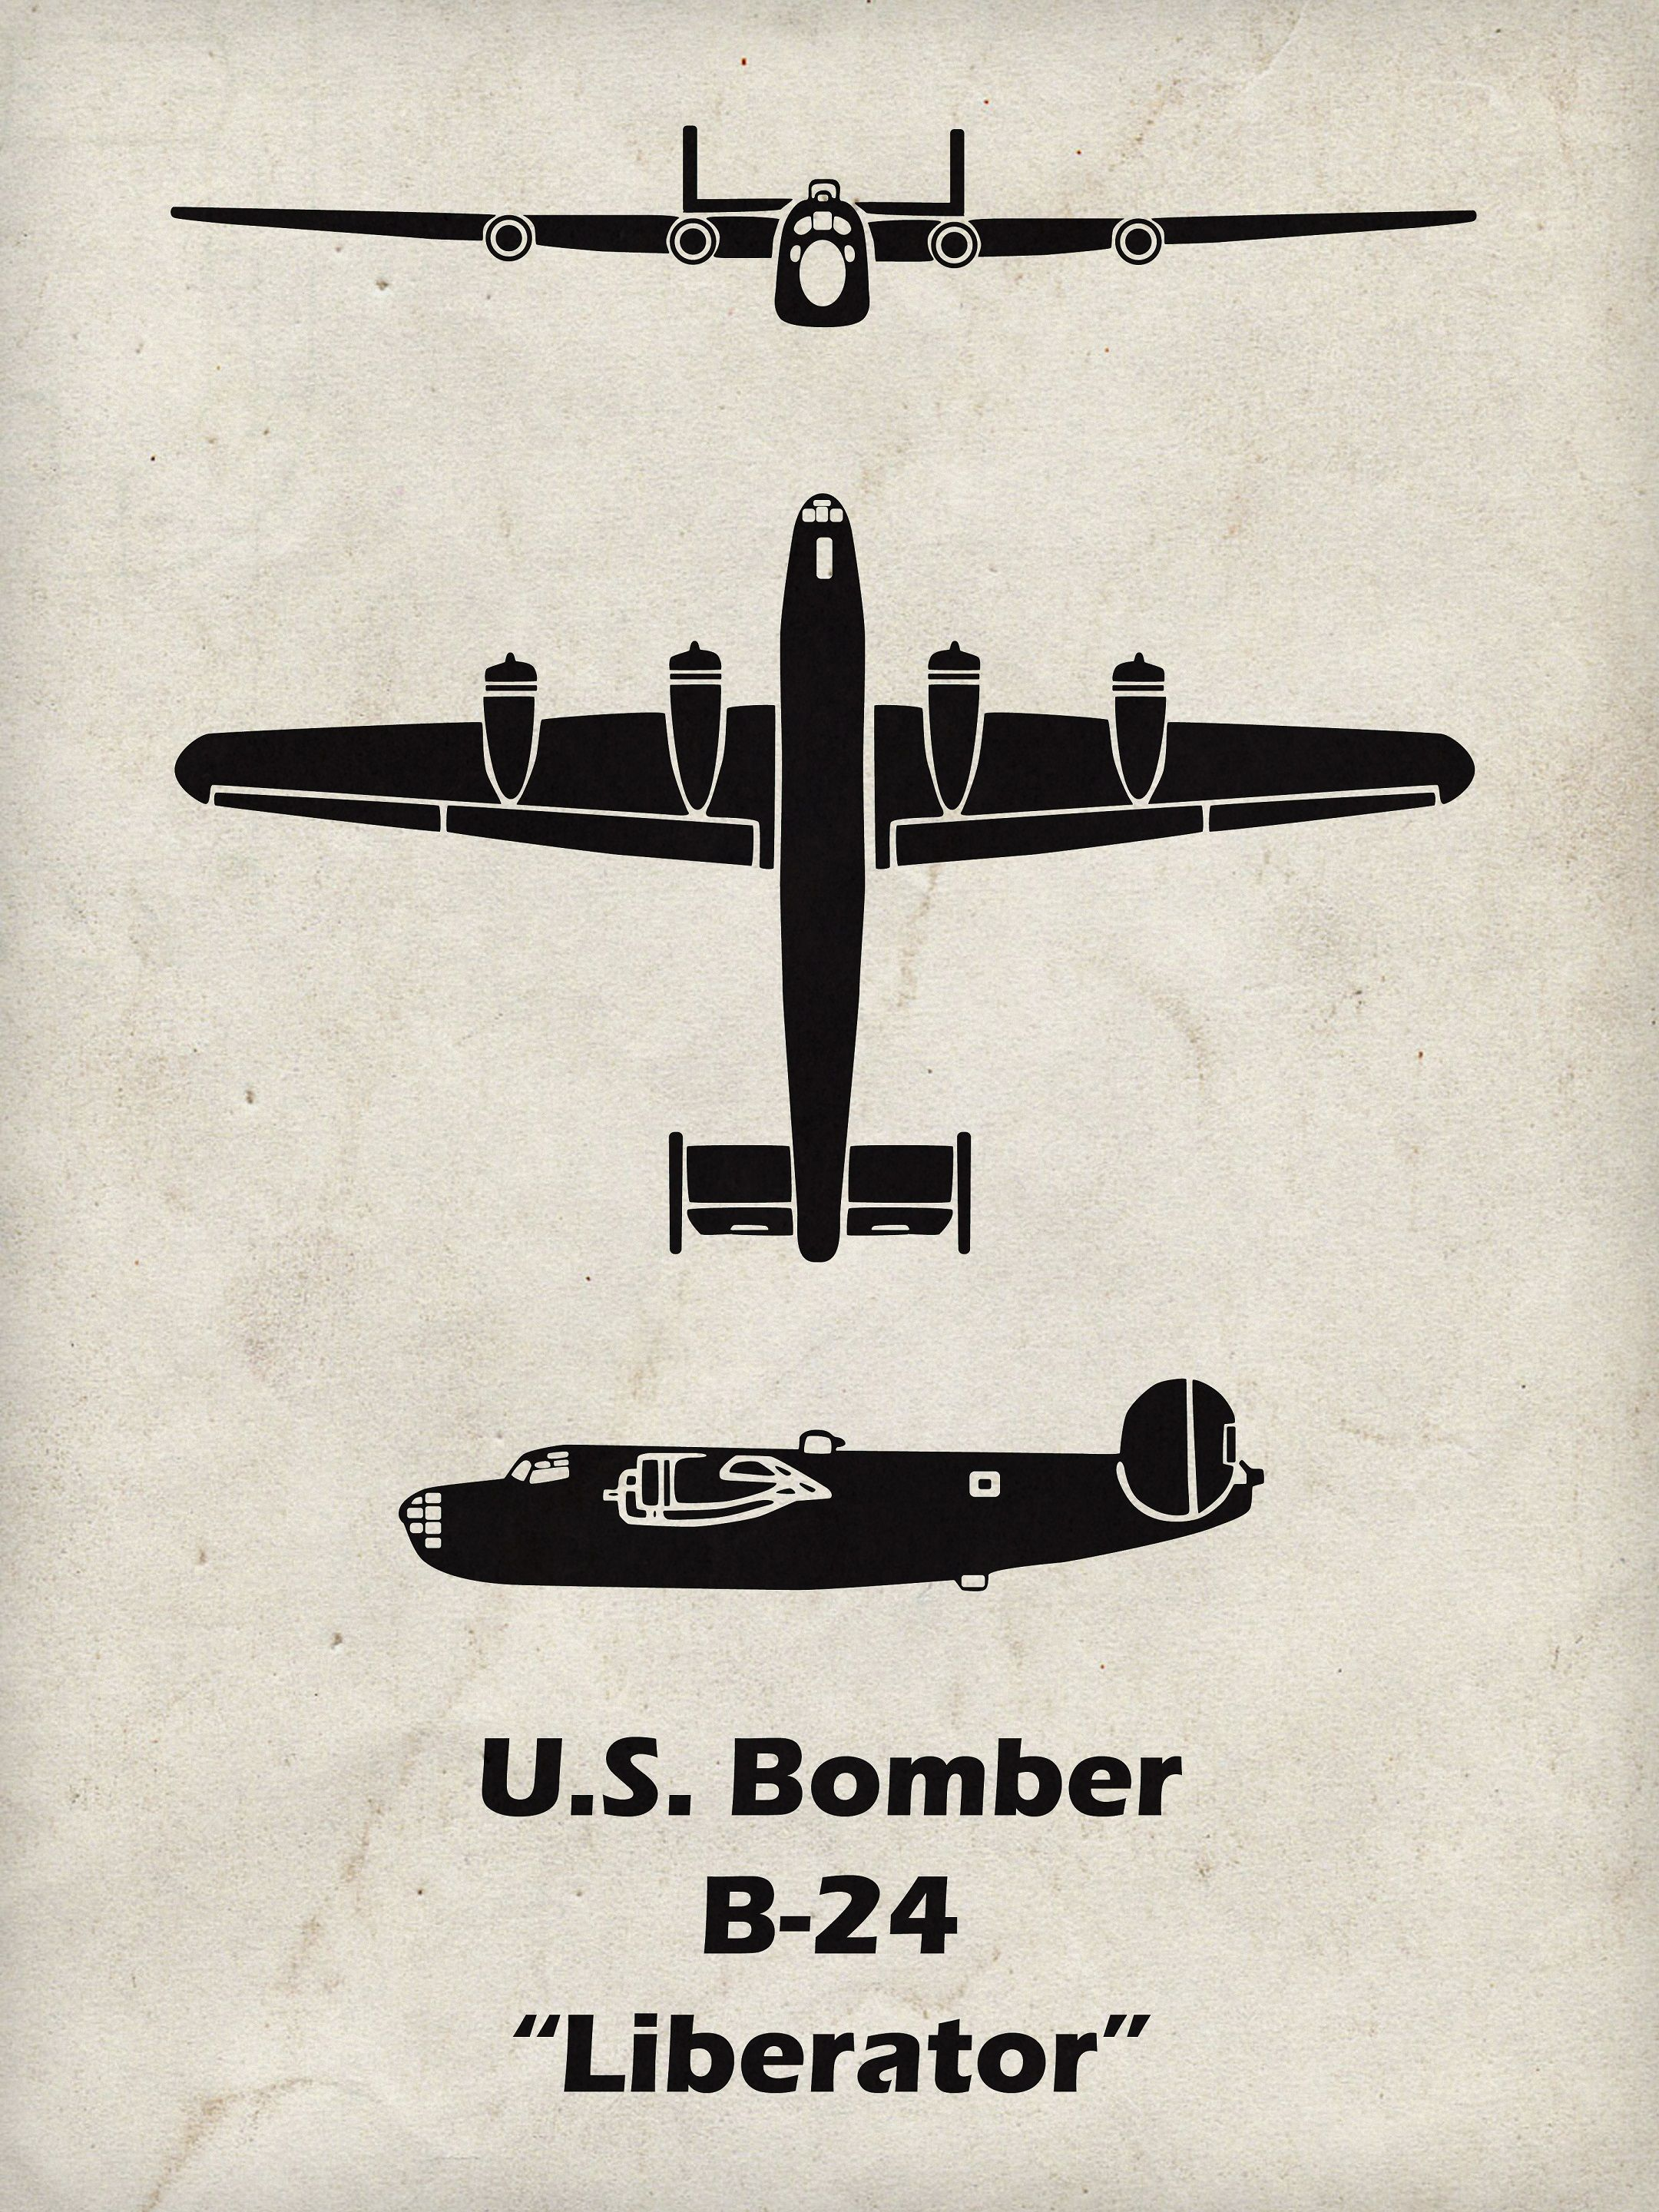 B 24 Liberator Print Aircraft Posters And Diagrams Piston Engines Engine Diagram The Was Manufactured By Consolidated Corporation Originally They Were Asked To Produce 17 However After Two Of Their Employees Spent